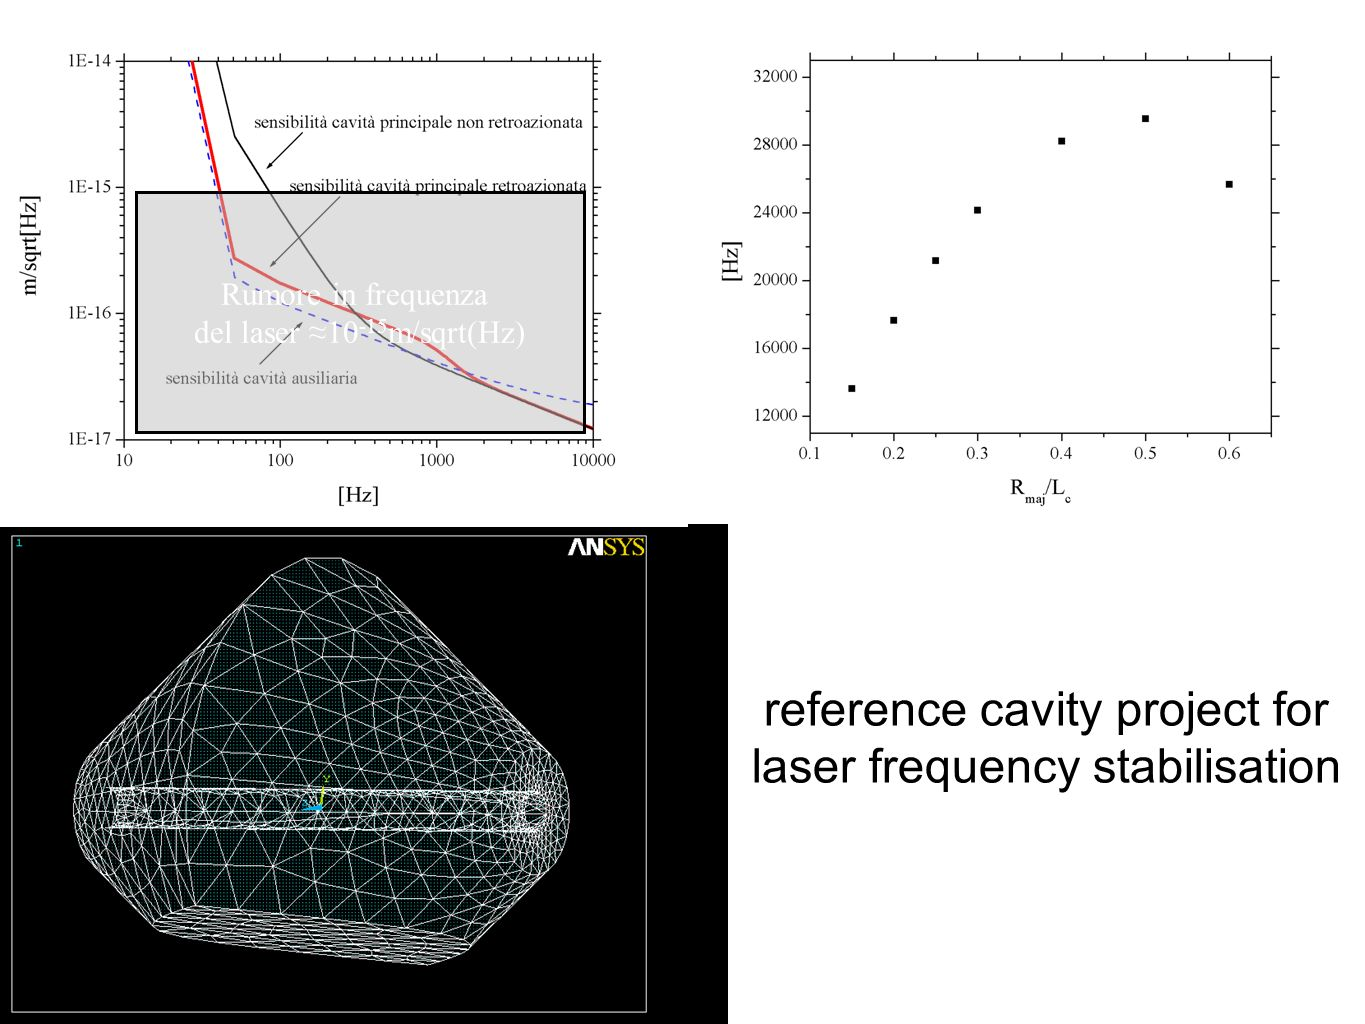 Rumore in frequenza del laser 10 -15 m/sqrt(Hz) reference cavity project for laser frequency stabilisation